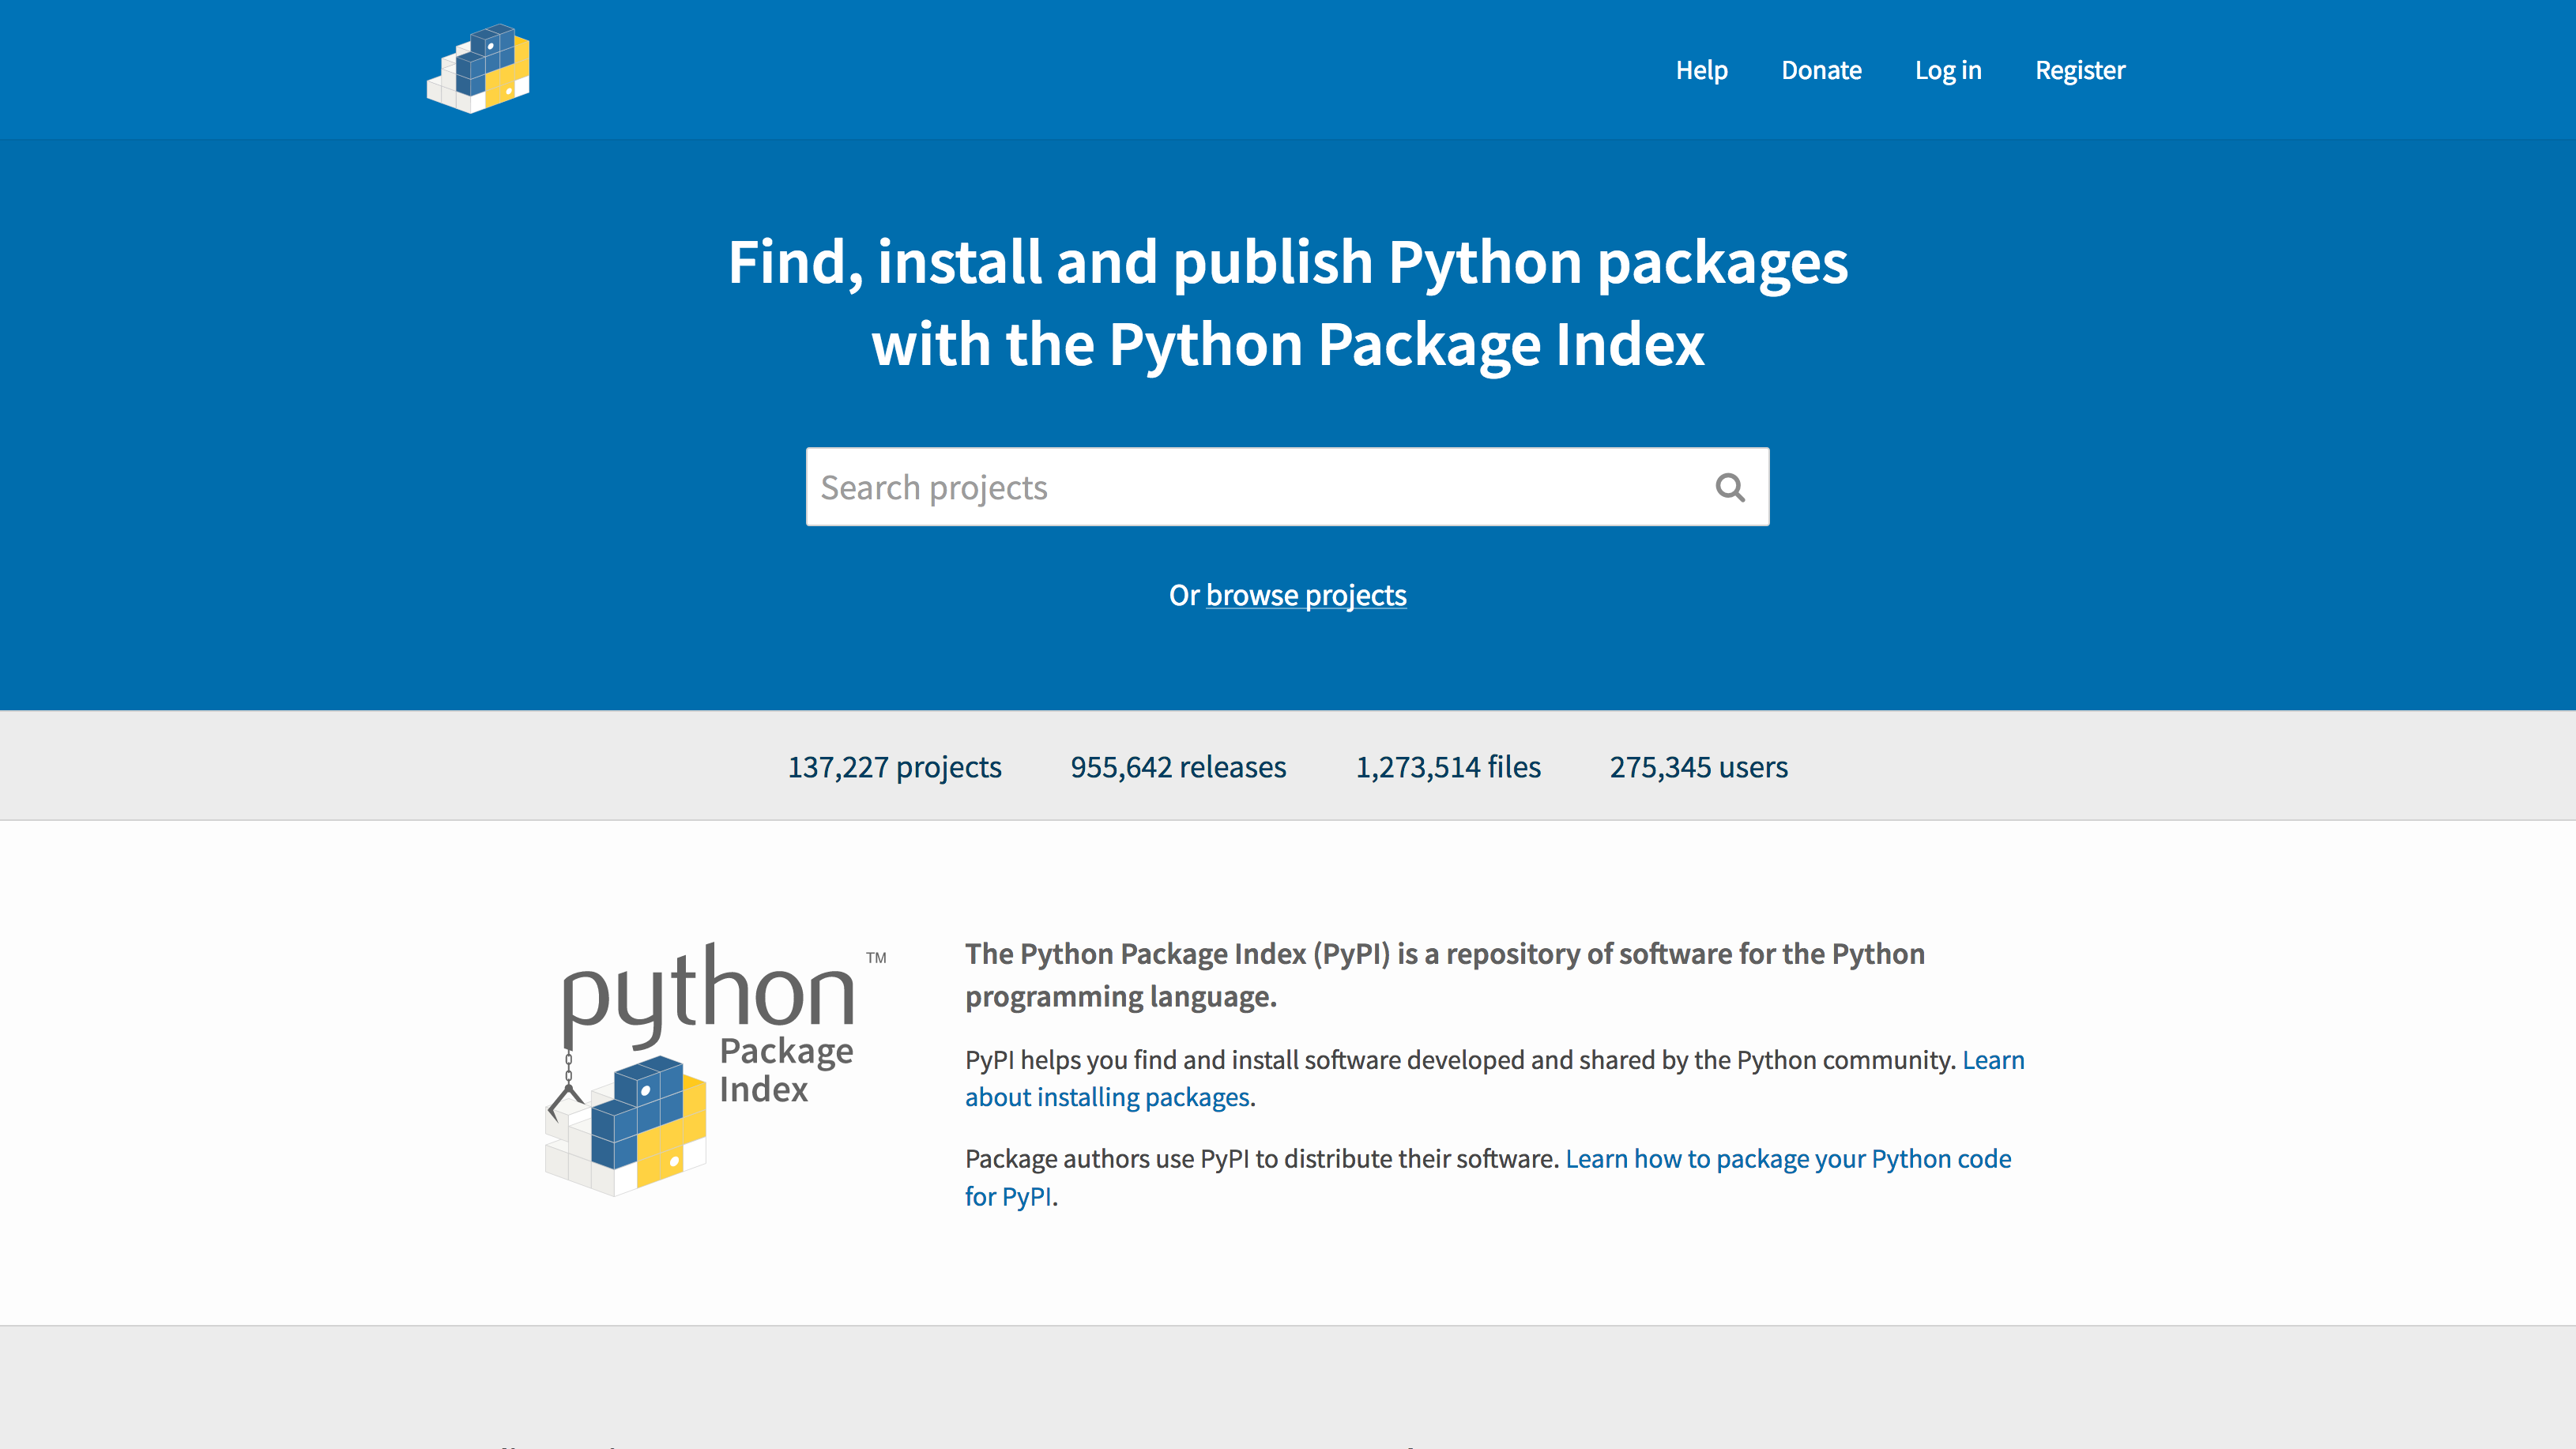 PyPI - the Python Package Index